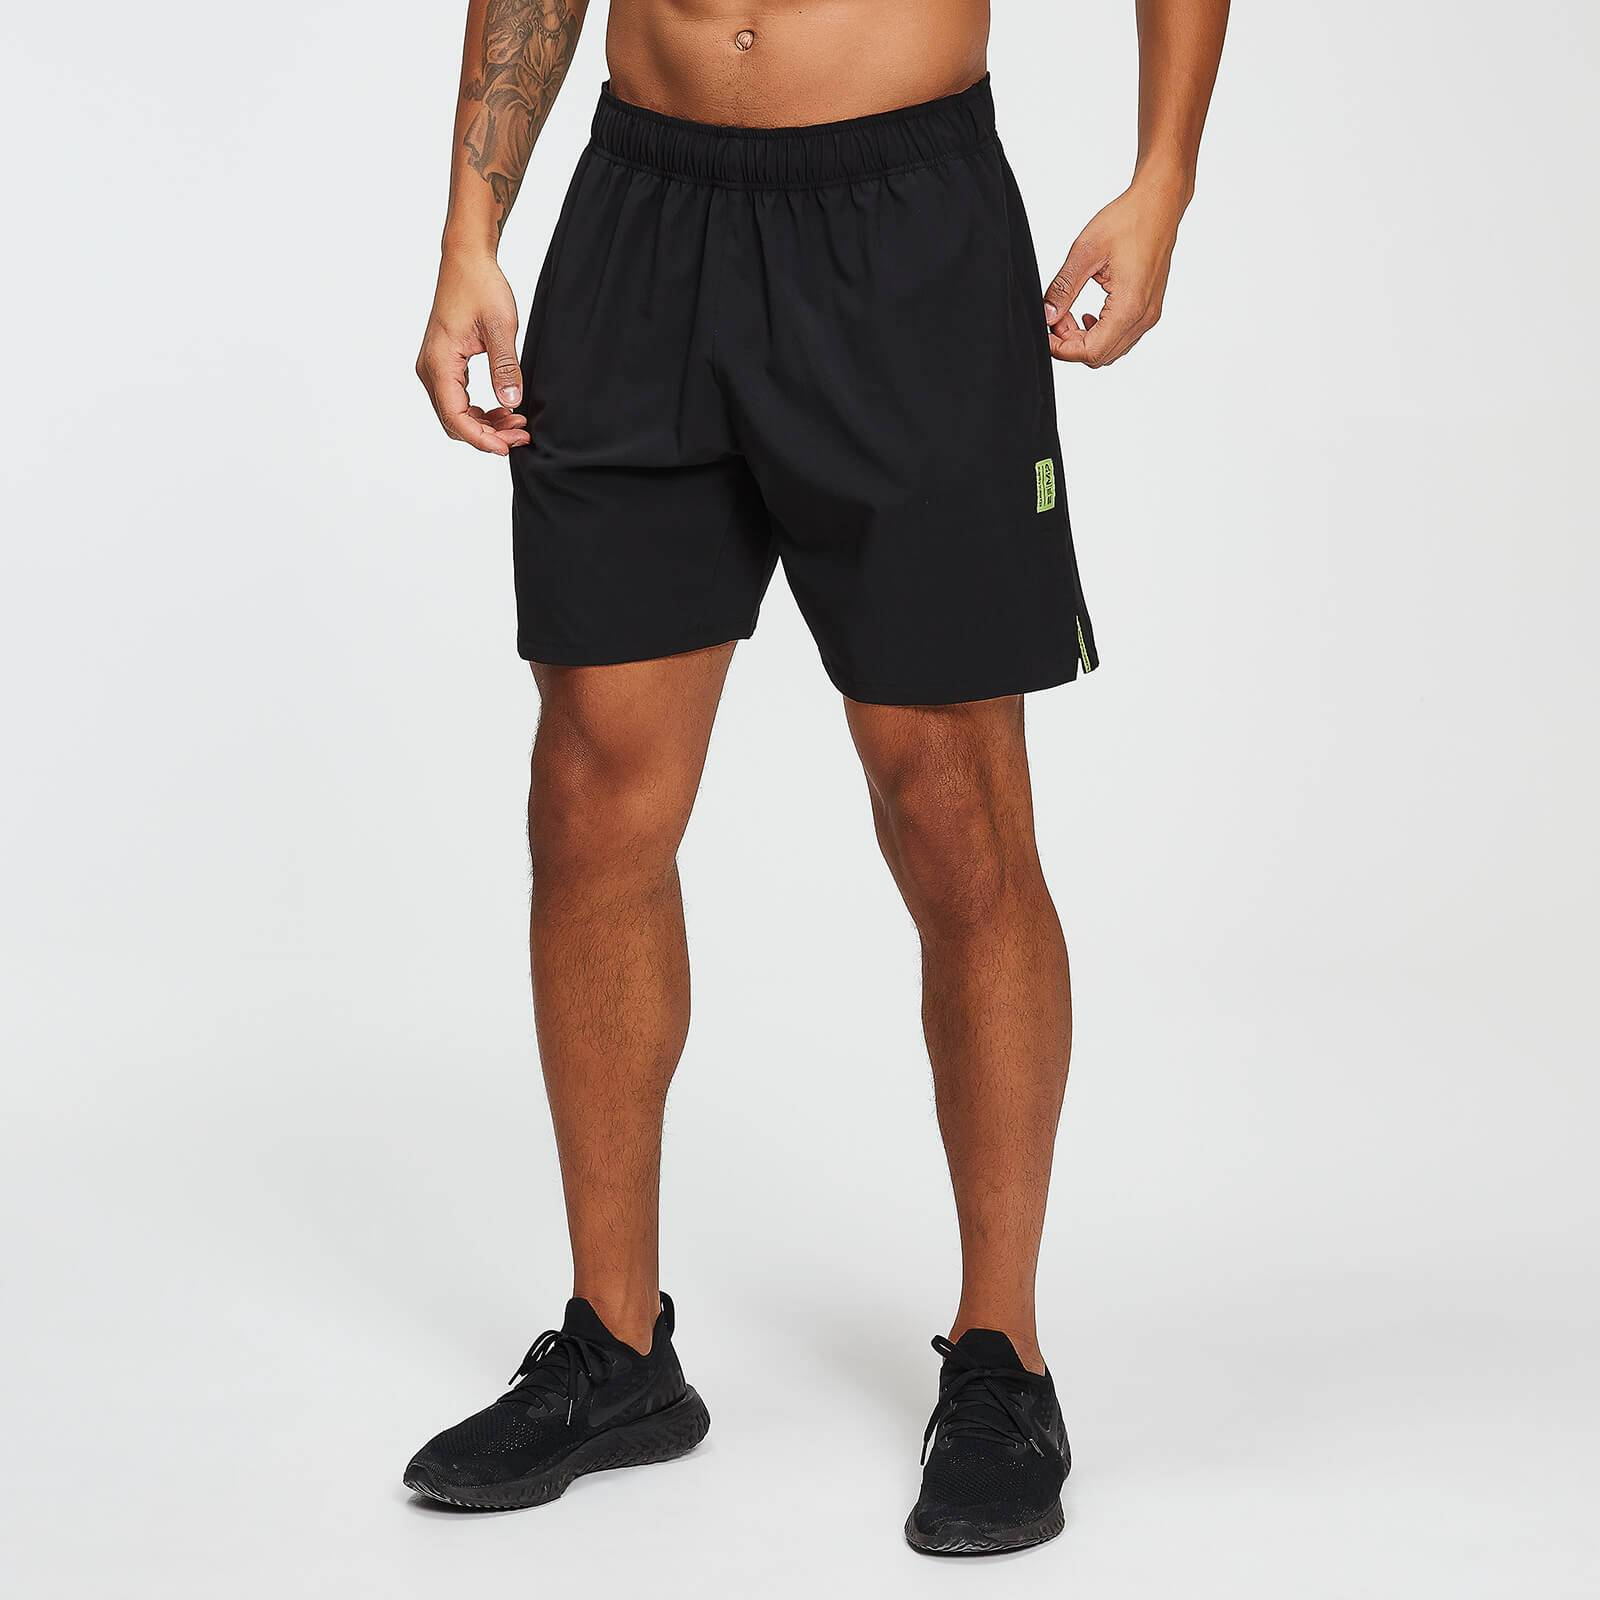 Myprotein MP Training Men's Stretch Woven 7 Inch Shorts - Black - M